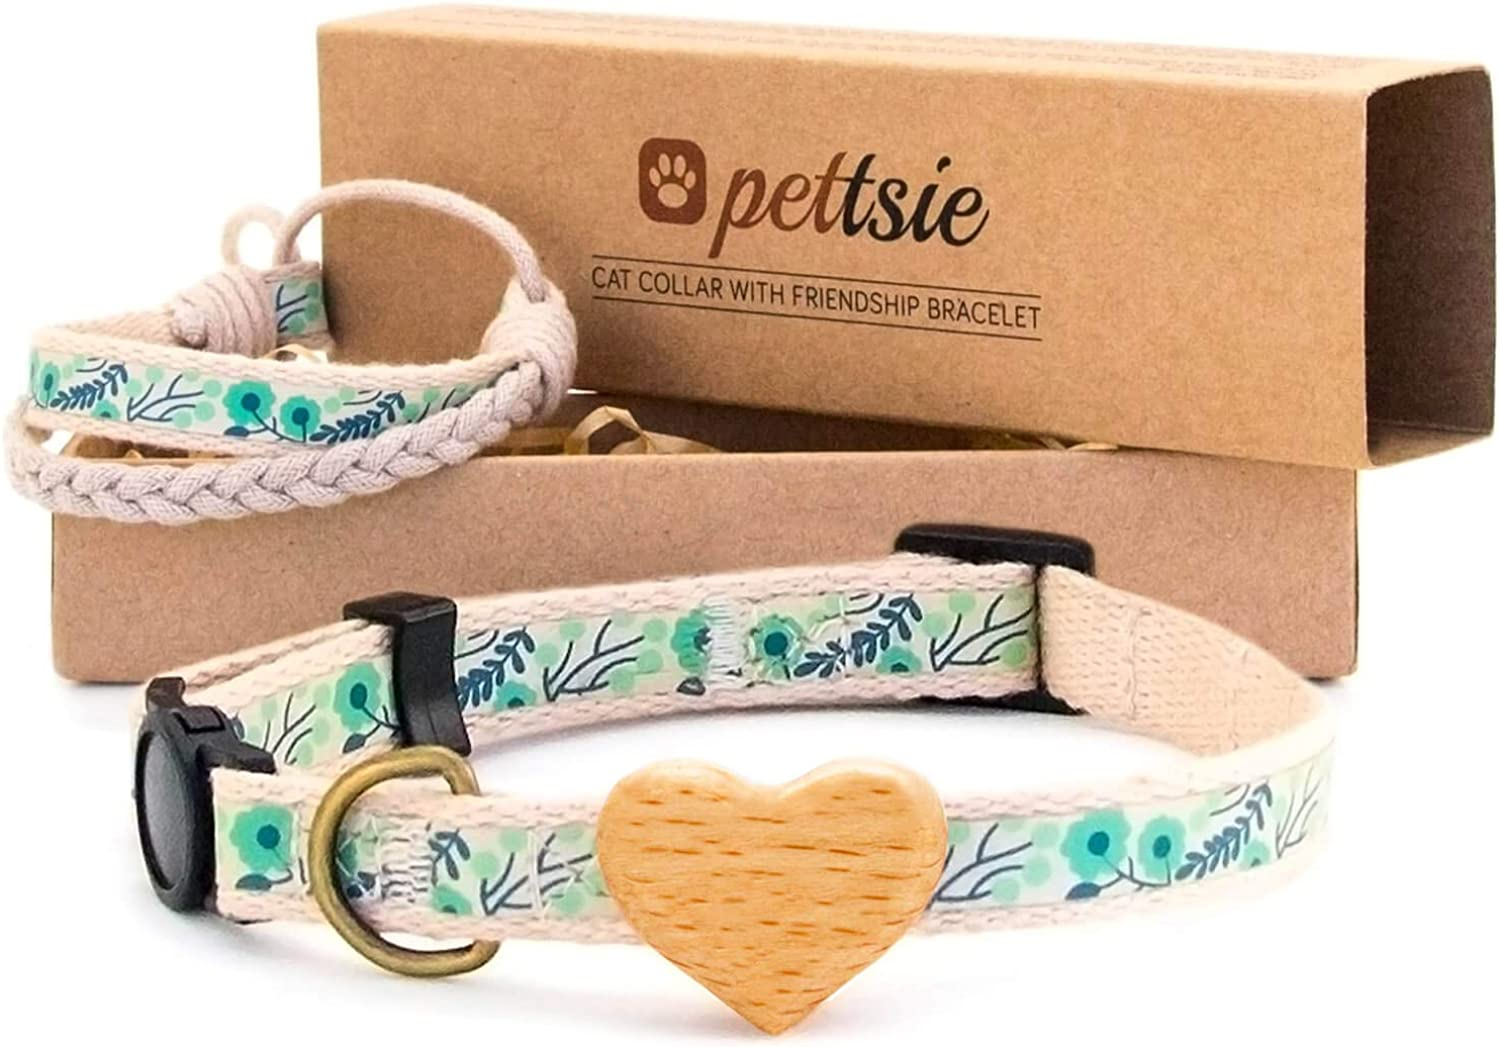 Pettsie Cat Collar Breakaway Safety with Heart and Friendship Bracelet for You, Natural and Soft 100% Cotton for Extra Comfort, Strong and Durable, Easy Adjustable Size 811 Inch (Green)